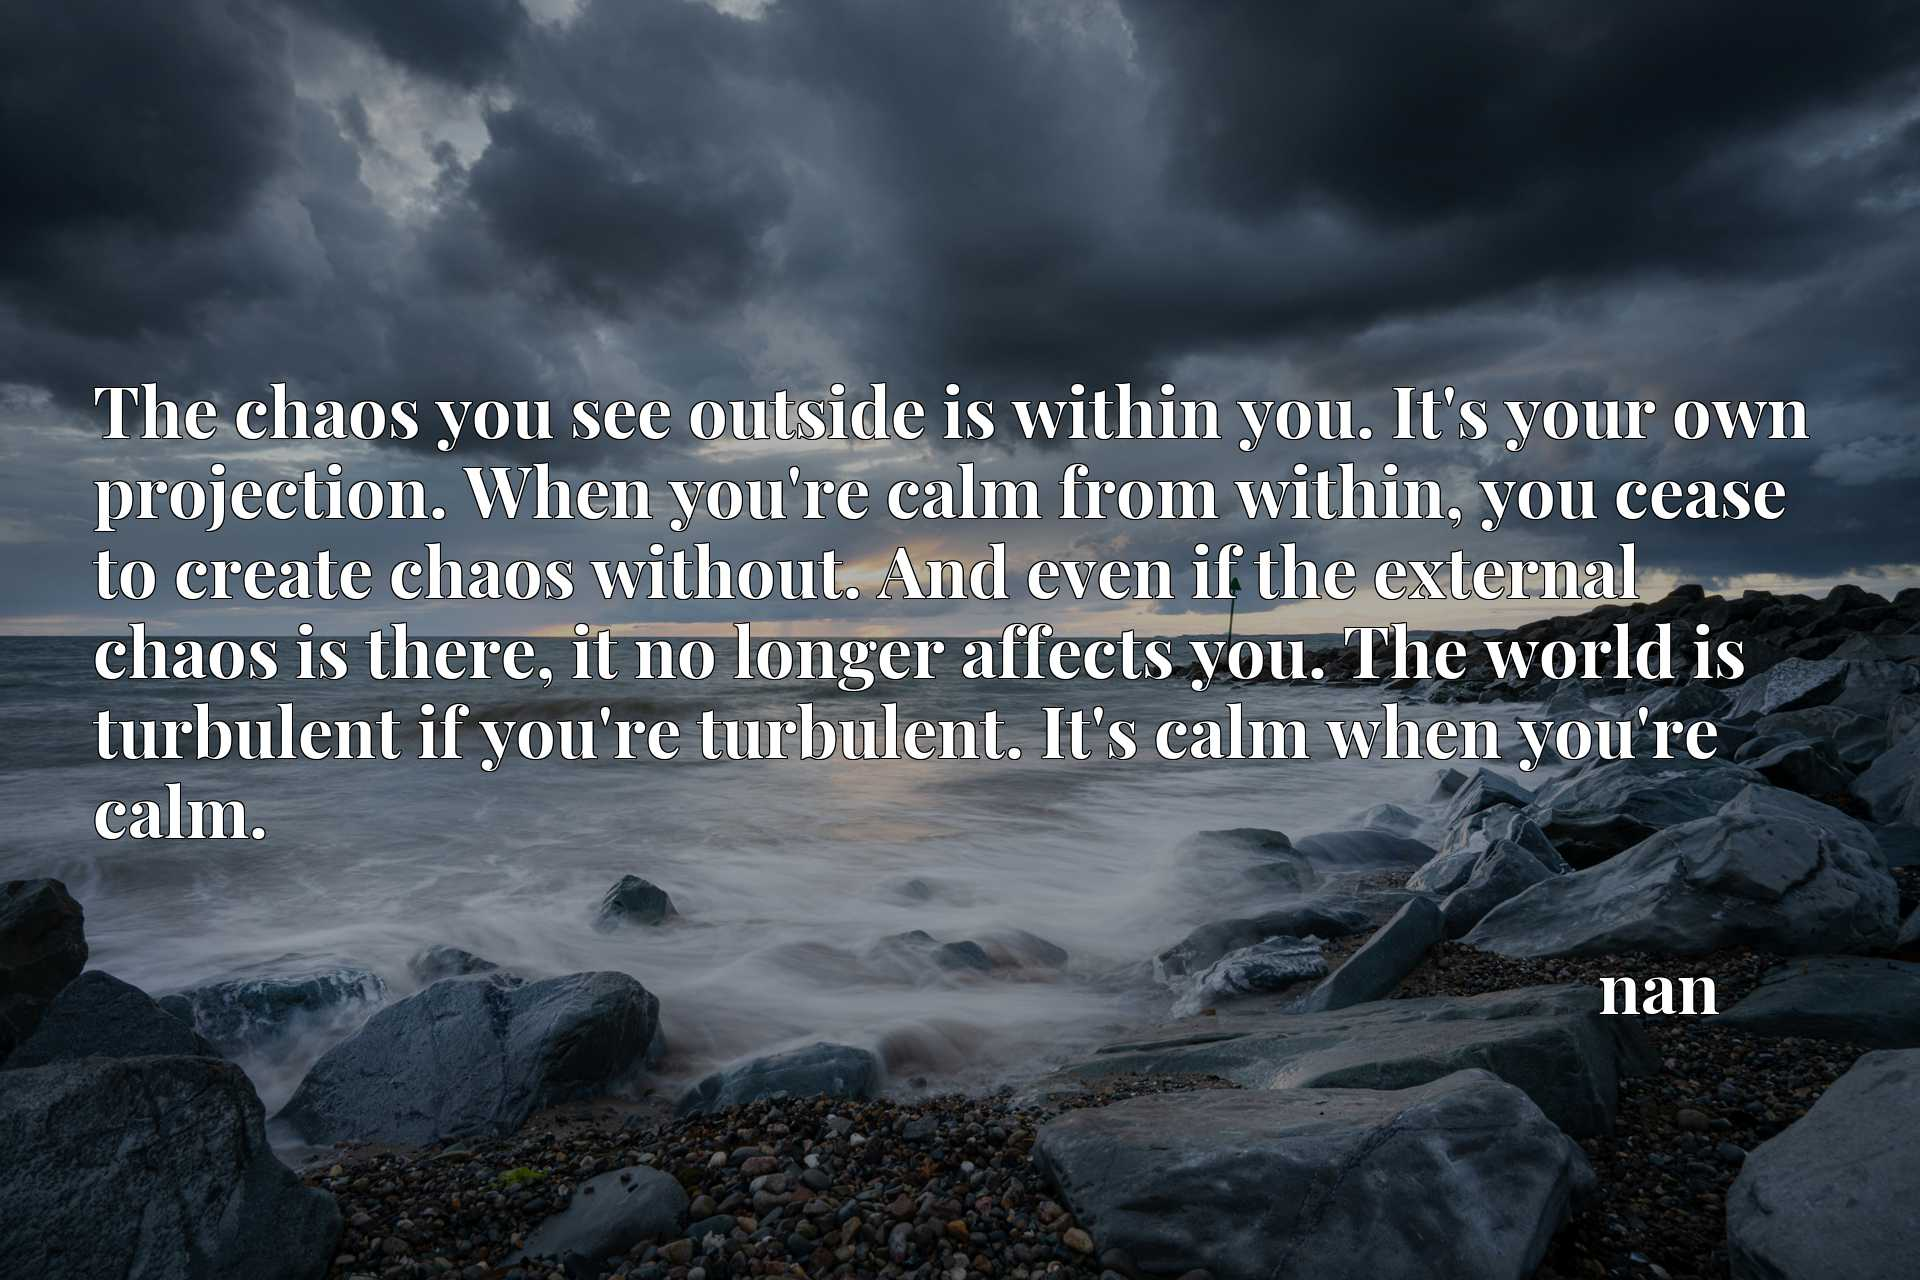 The chaos you see outside is within you. It's your own projection. When you're calm from within, you cease to create chaos without. And even if the external chaos is there, it no longer affects you. The world is turbulent if you're turbulent. It's calm when you're calm.